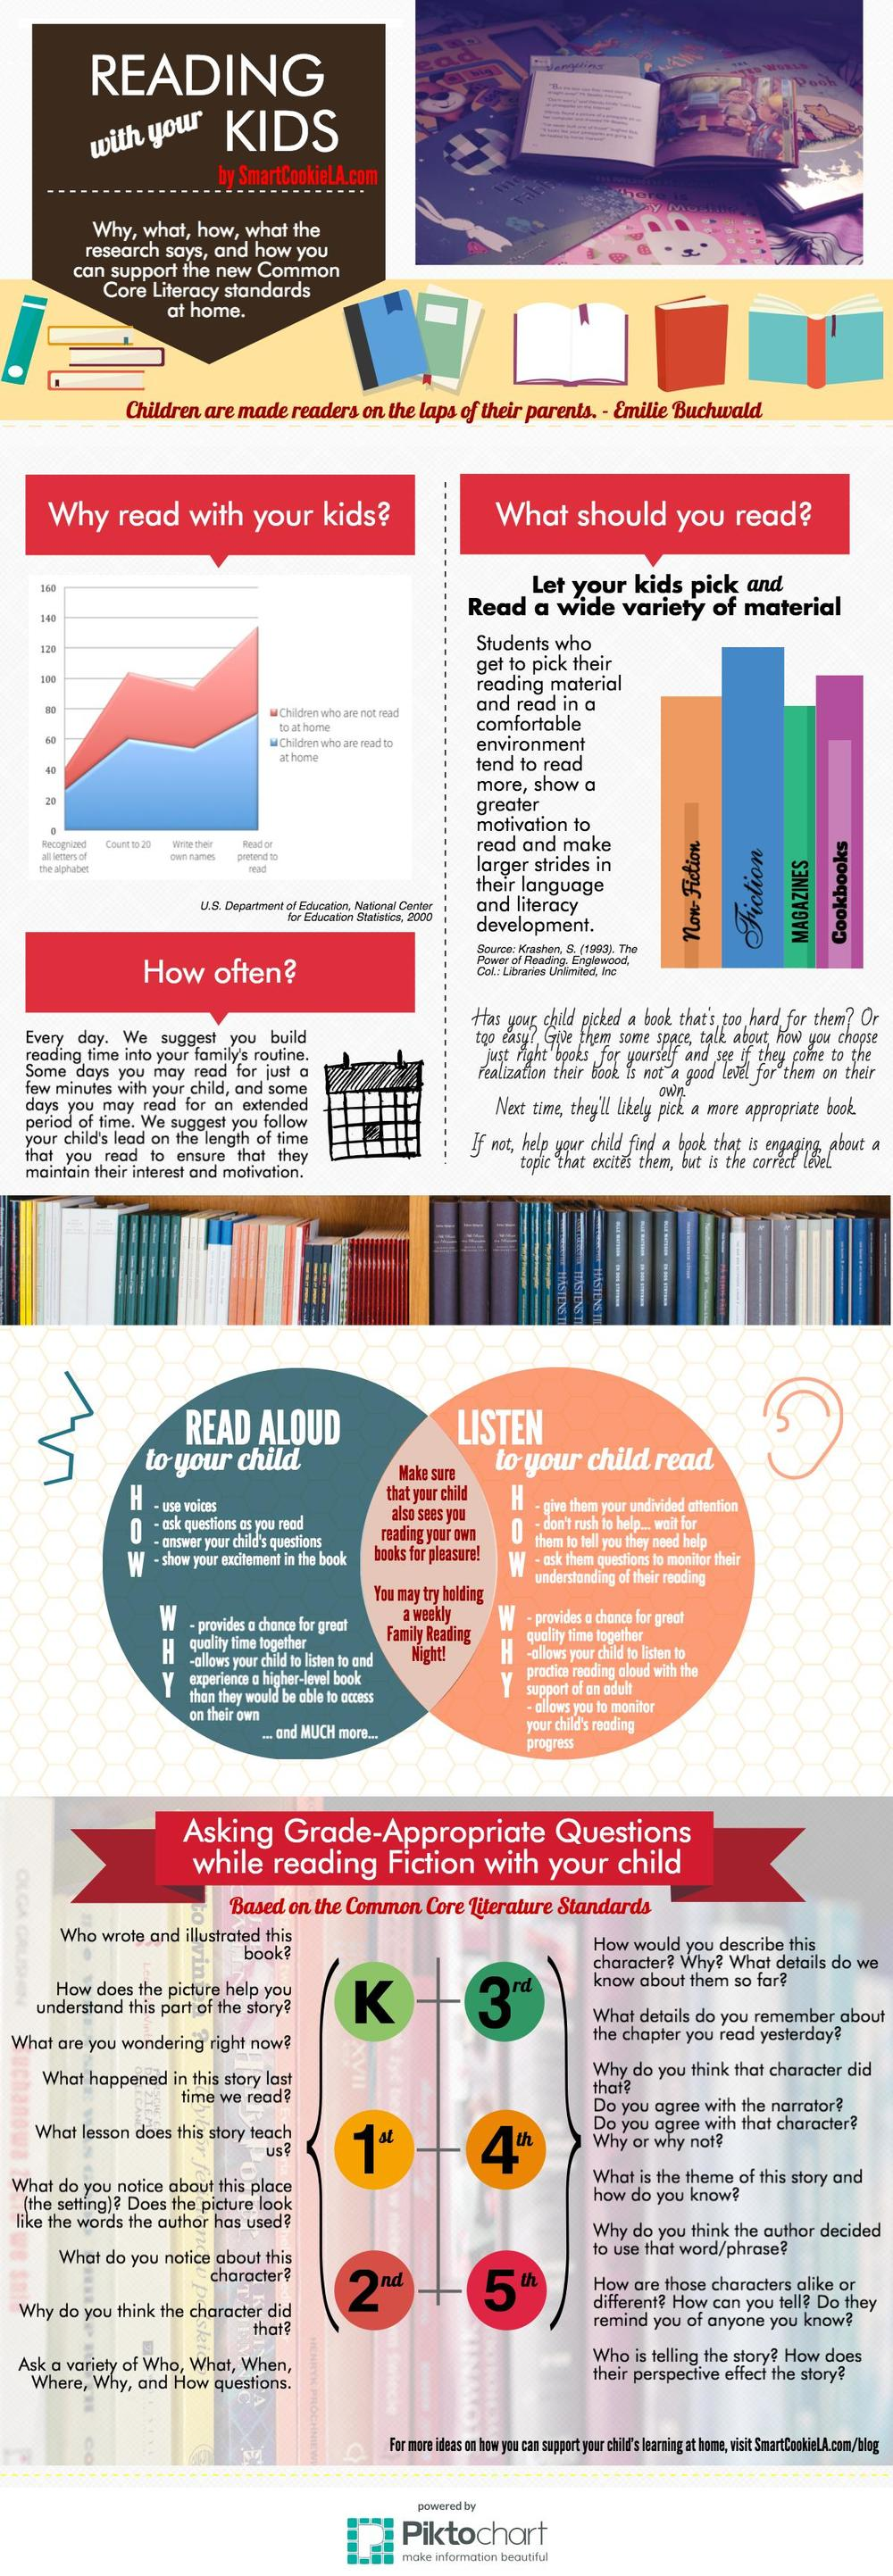 Reading with your Kids Infographic.jpeg